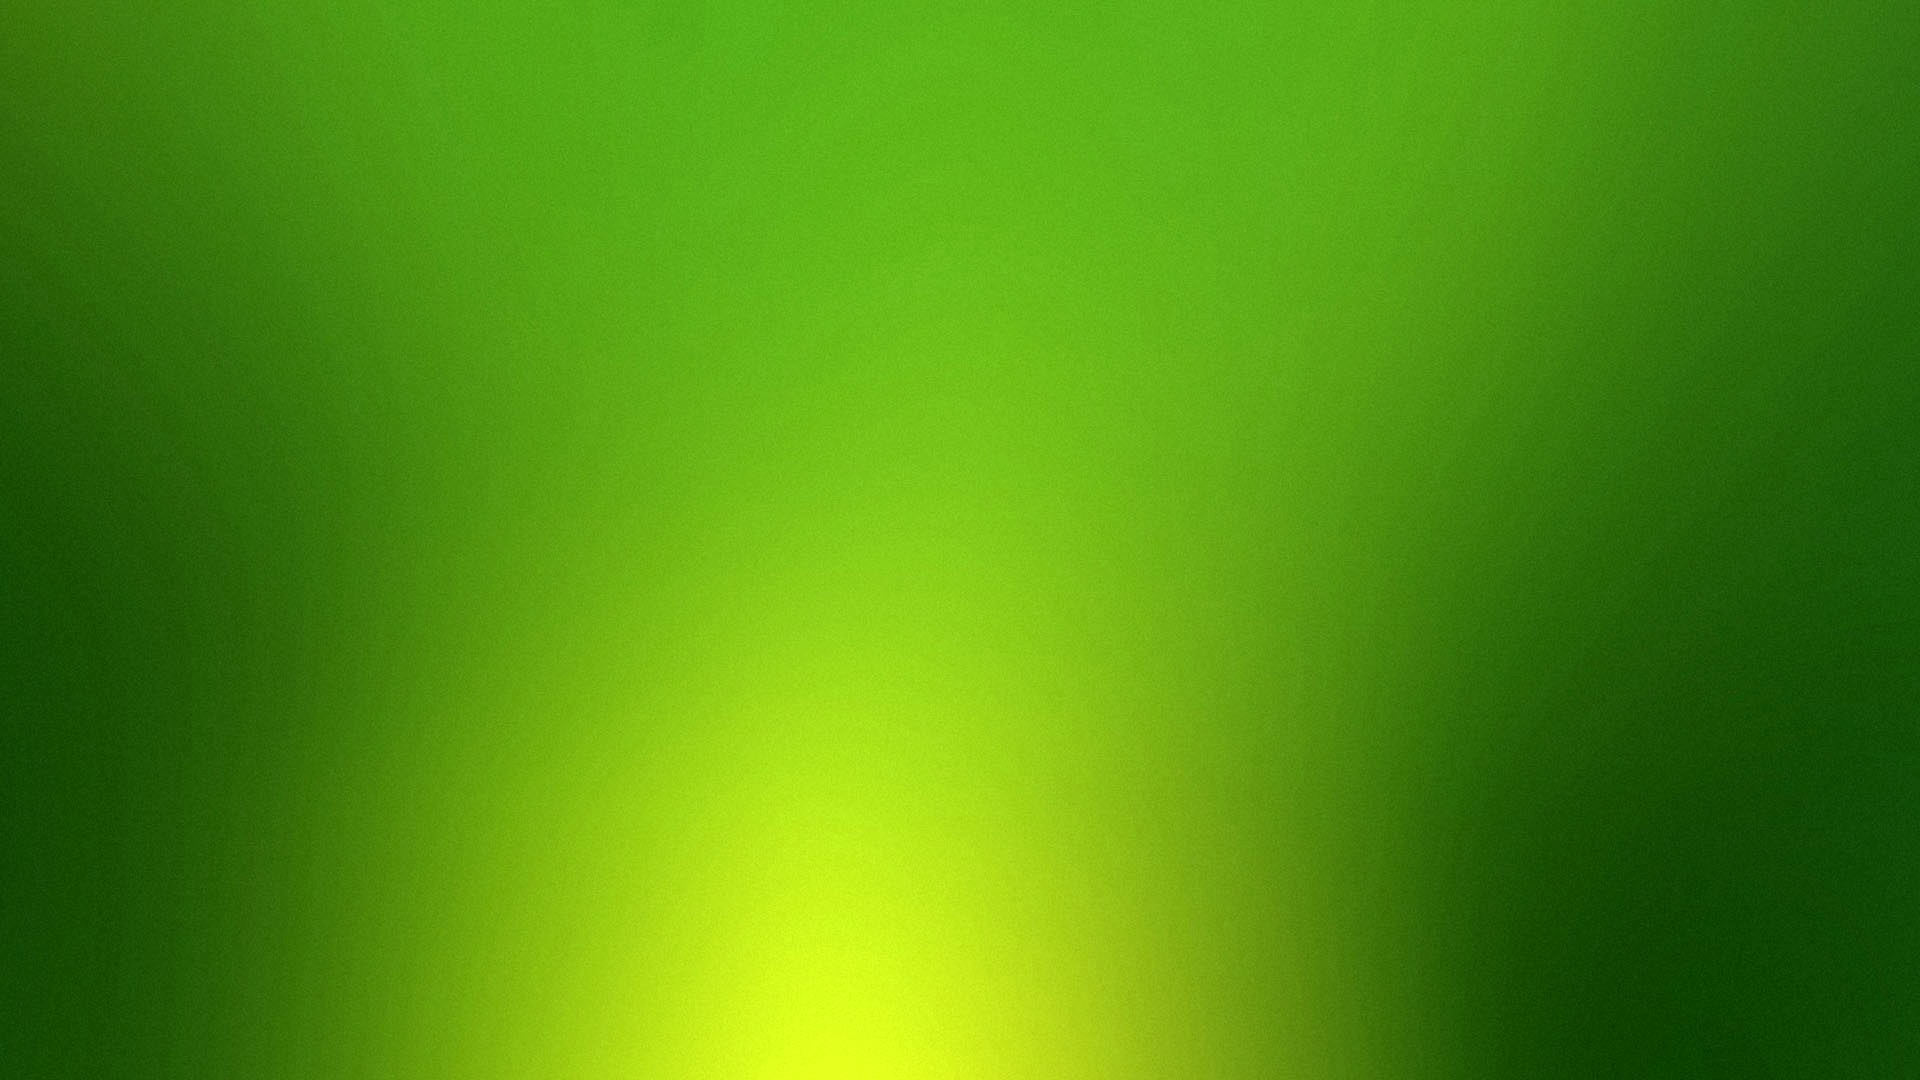 1920x1080 ...  HD Lime Green Backgrounds | wallpaper.wi